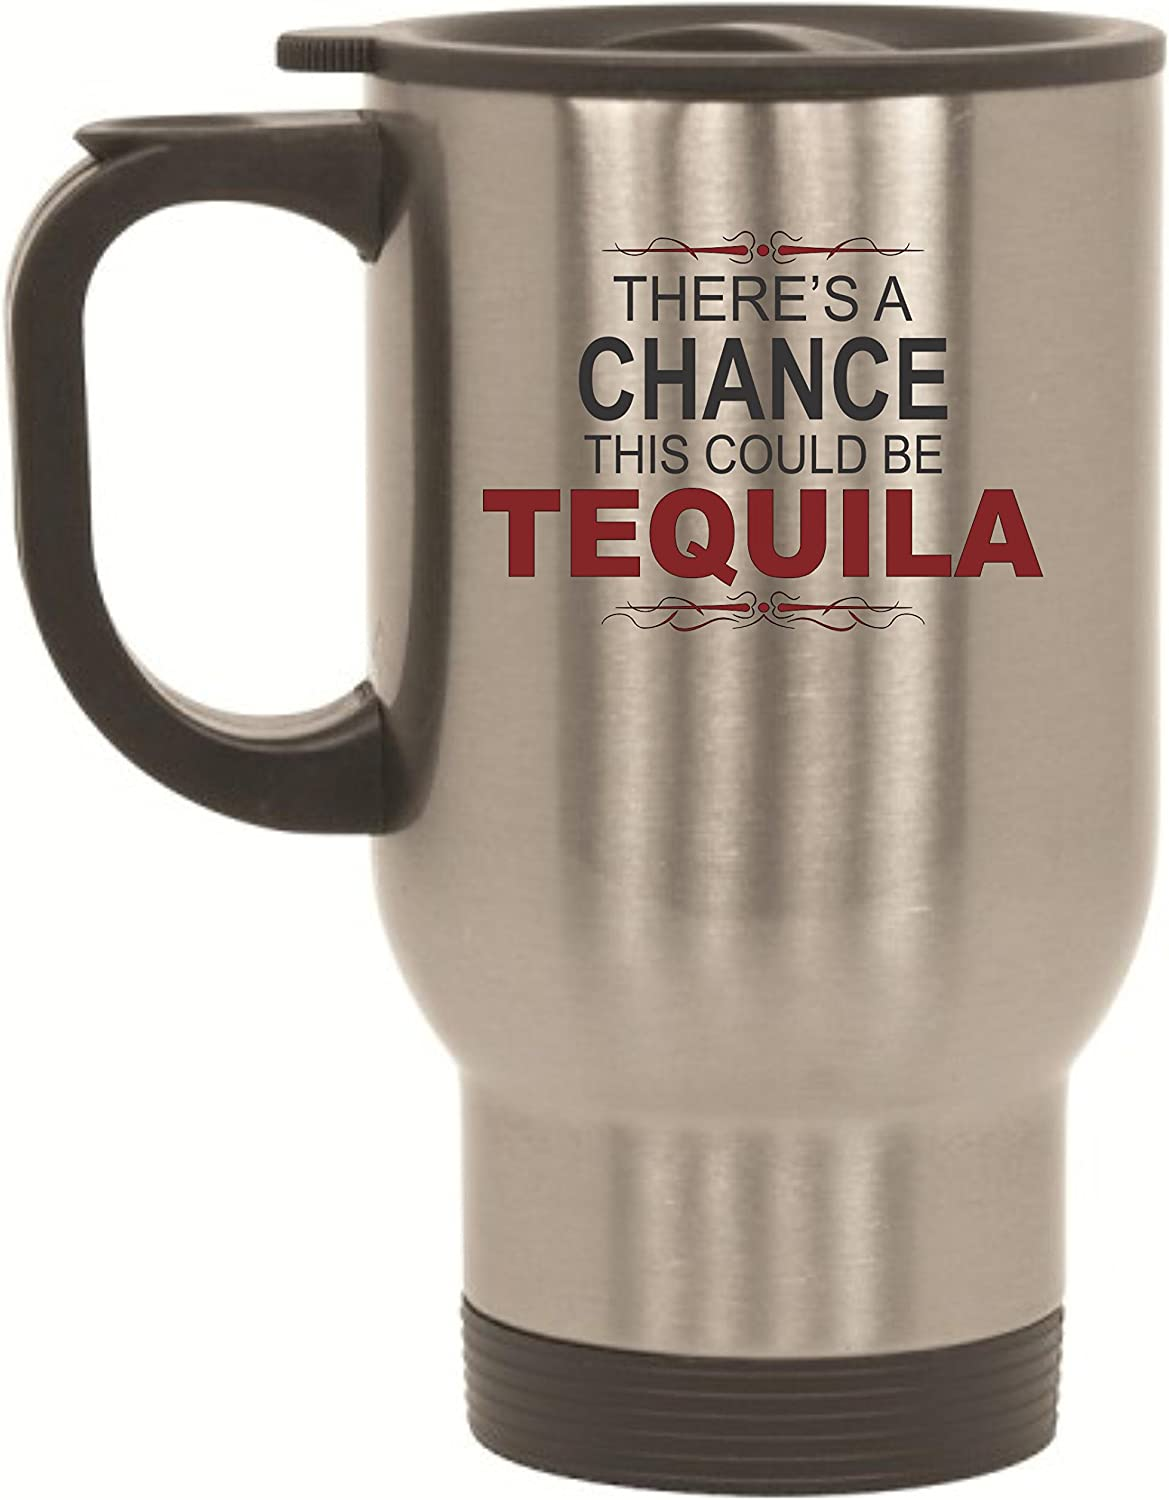 There's A Chance This Could Be Tequila voyage Mug 14 oz acier inoxydable by BeeGeeTees by BeeGeeTees